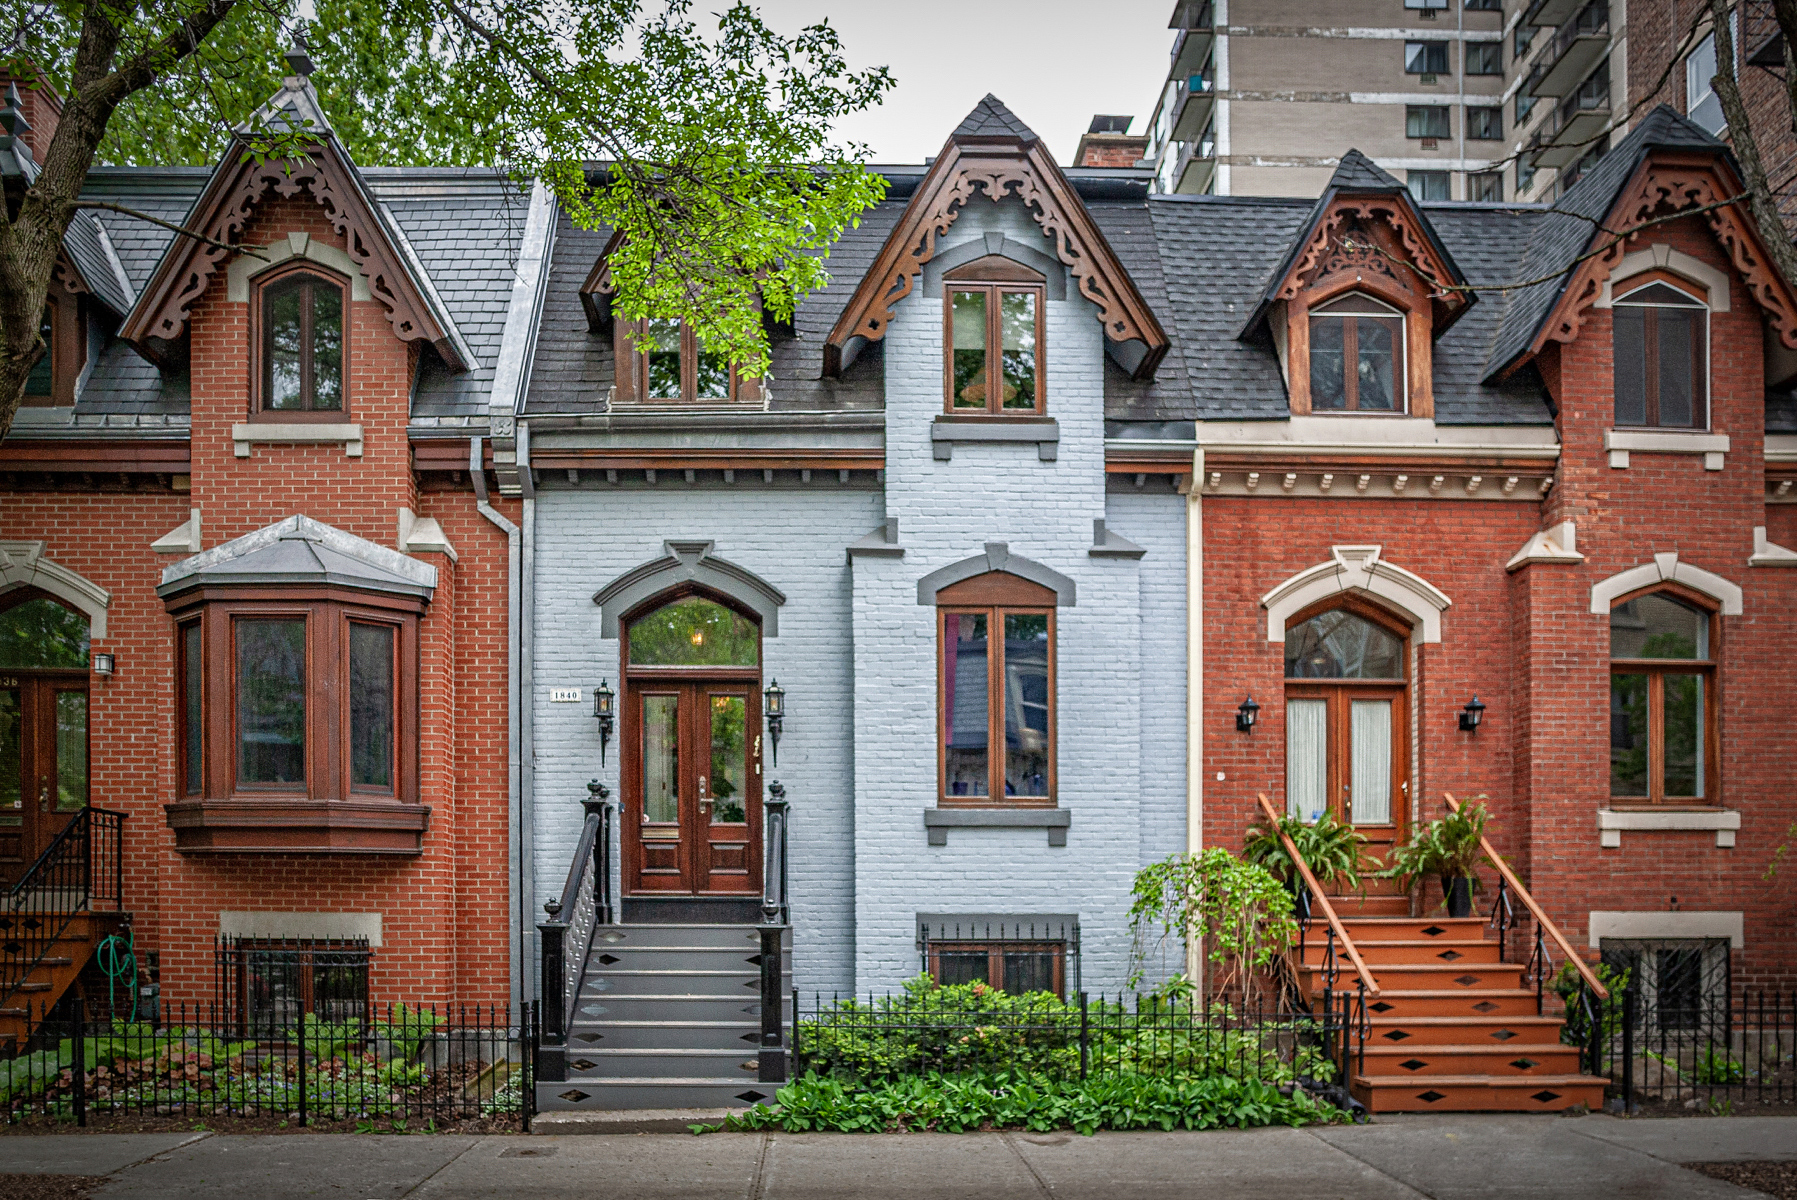 Rue Tupper row houses     The Streetscapes in Old Montreal offer an endless array of photo opportunities. The oldest Row Homes date from the 17th Century.    (photo by Timothy Olcott)